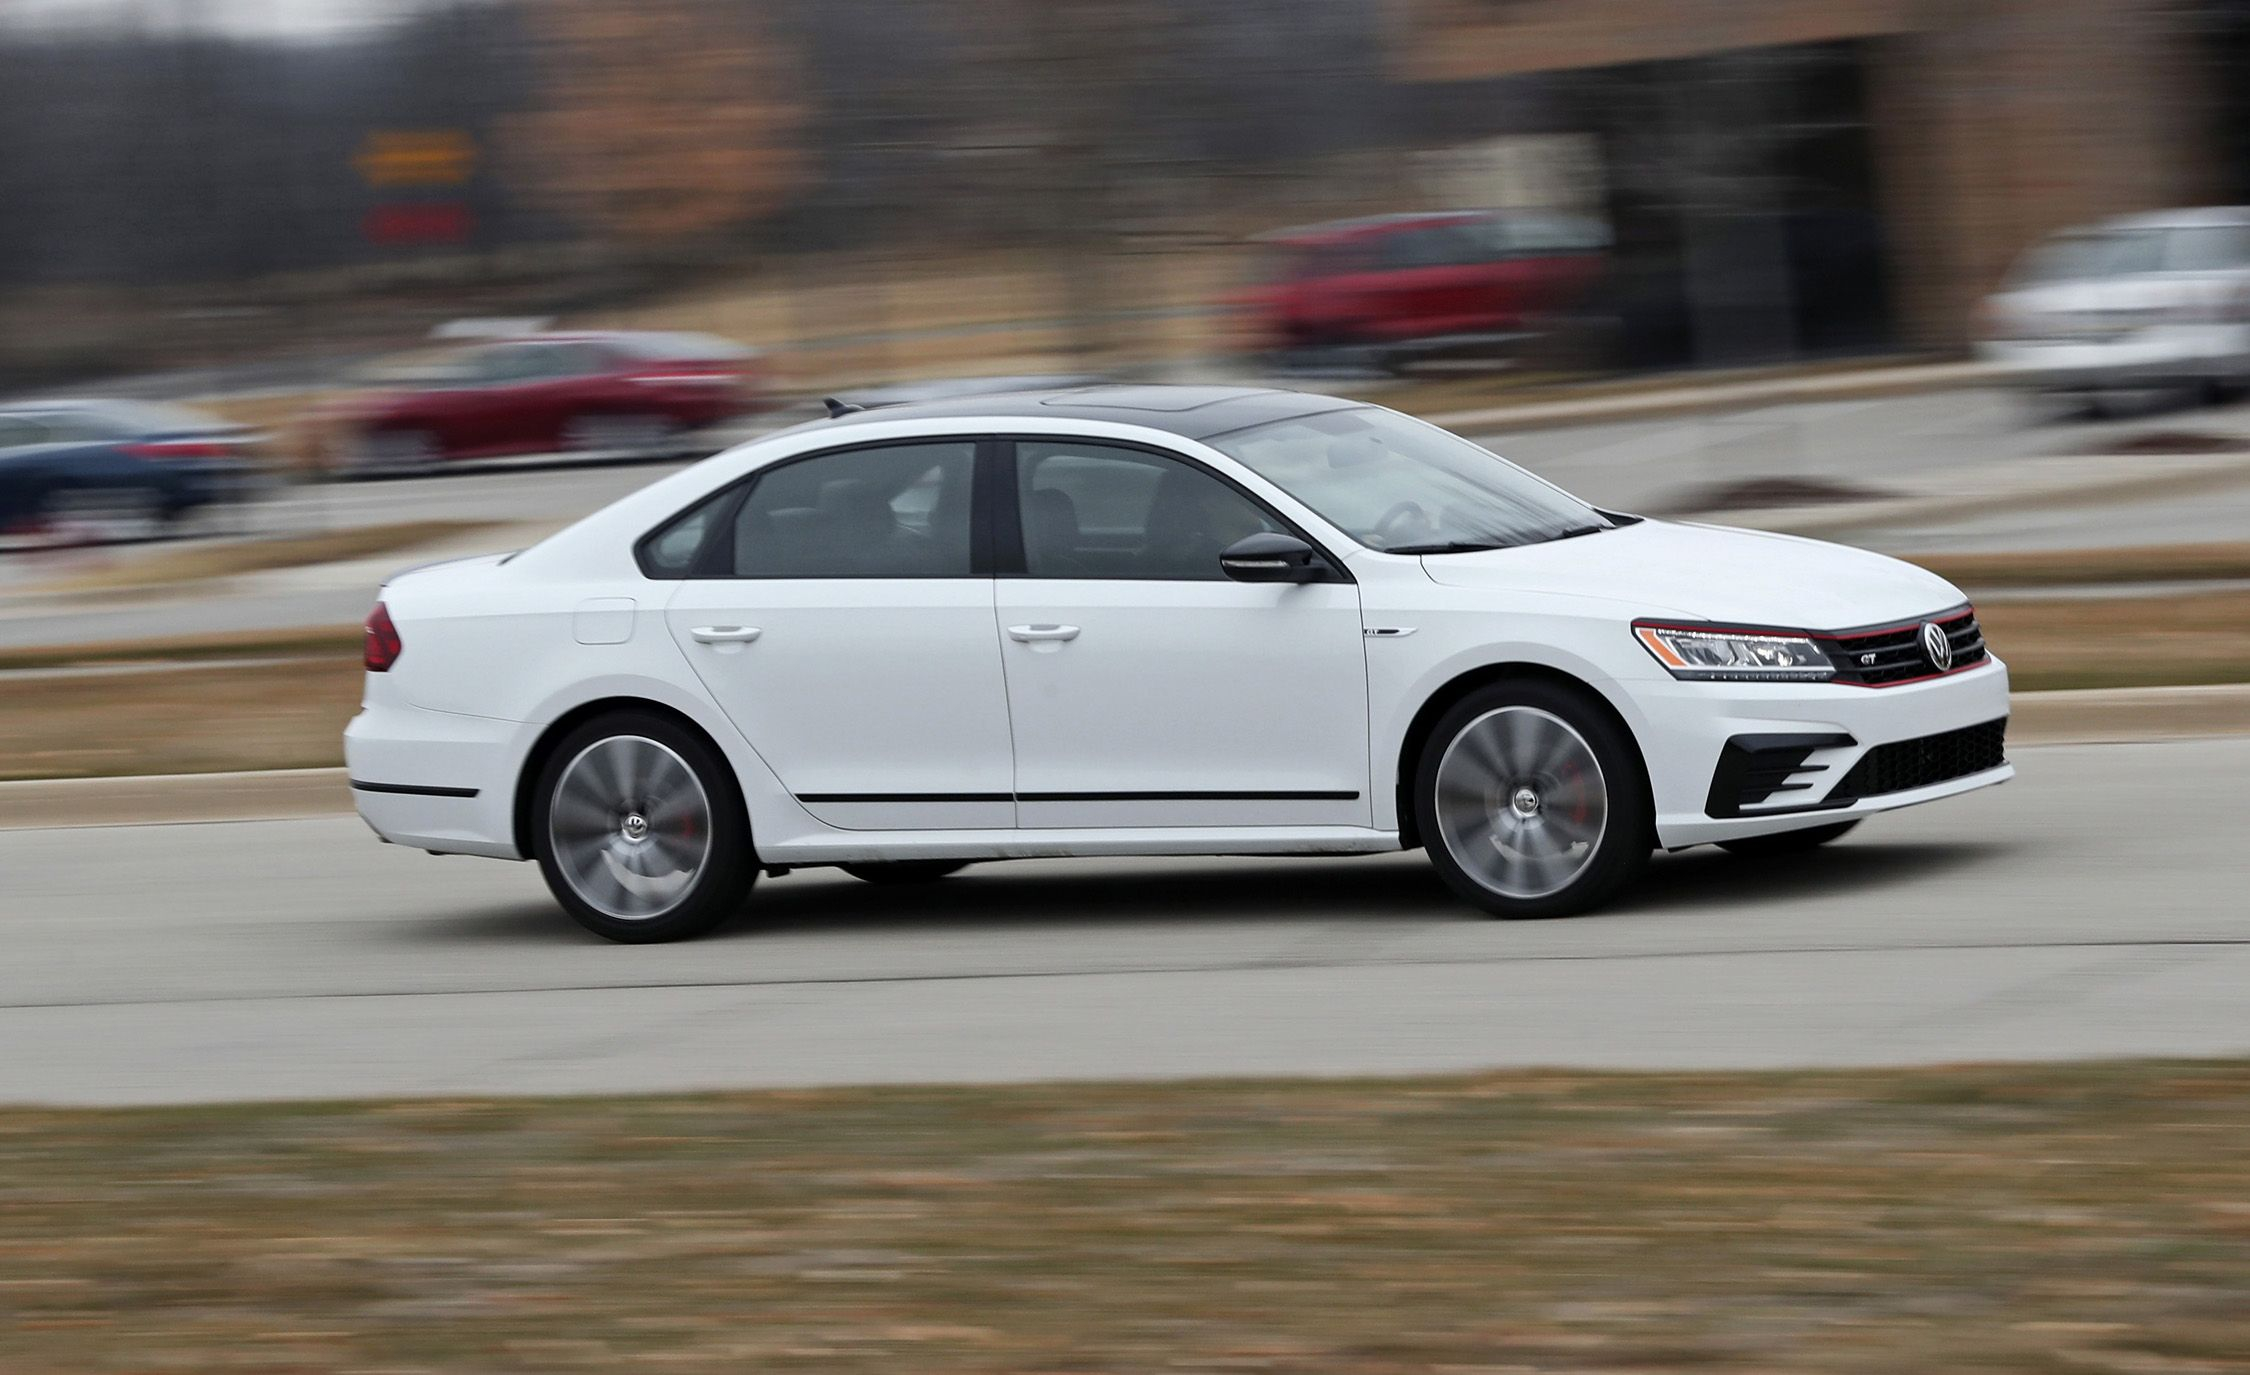 2019 Volkswagen Passat Review, Pricing, And Specs - 2022 Volkswagen Passat Fuel Economy Crash Test, Gas Mileage